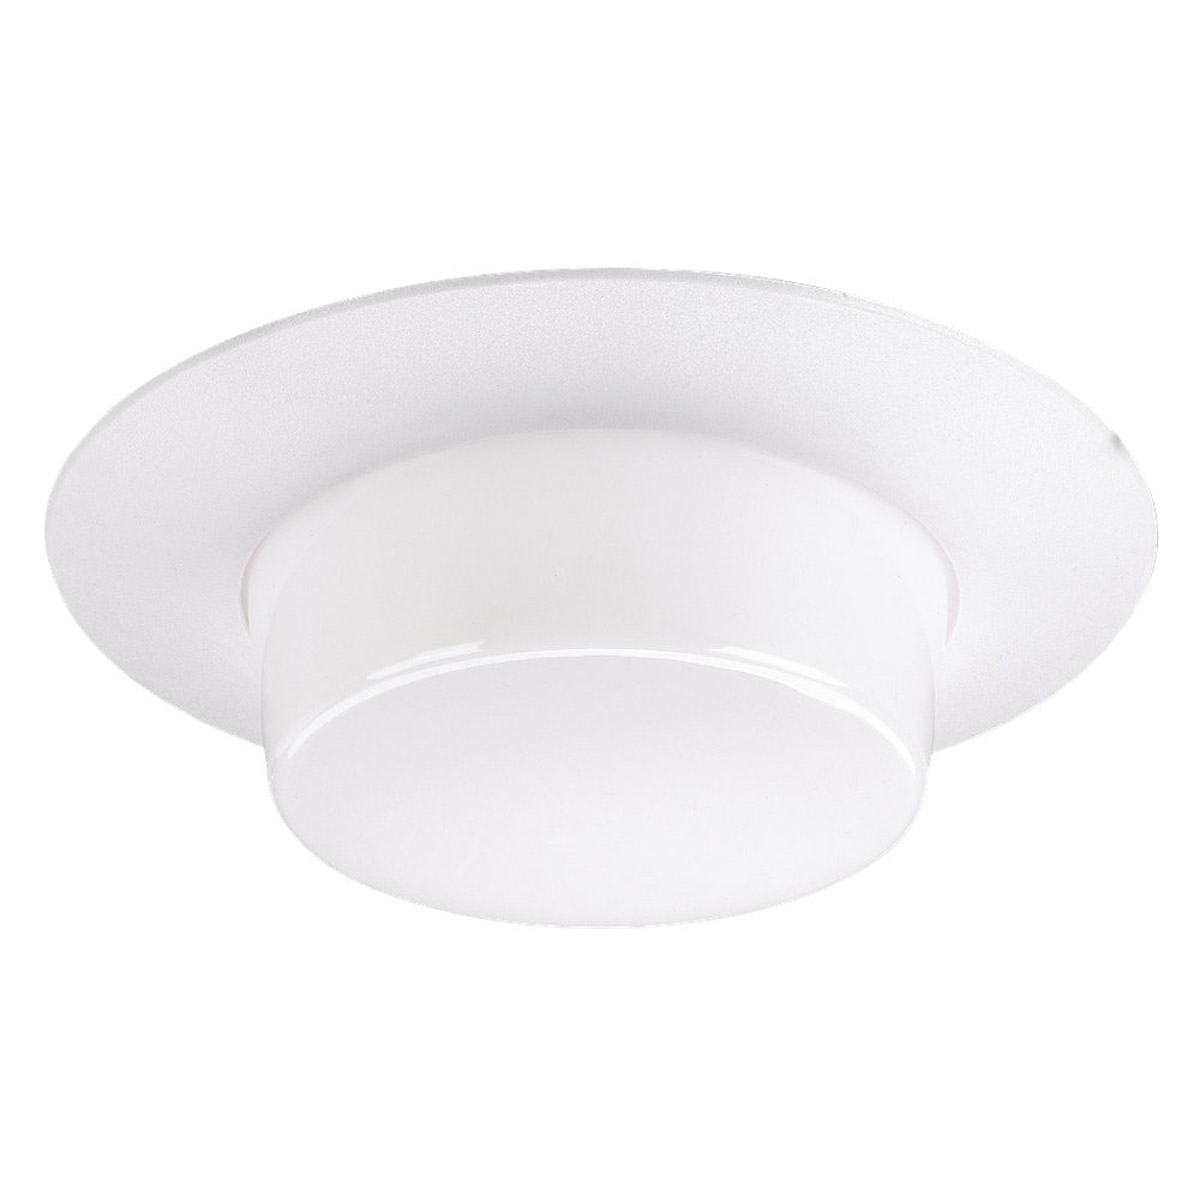 Sea Gull Lighting Signature Recessed Trim Only in White Plastic 1134-68